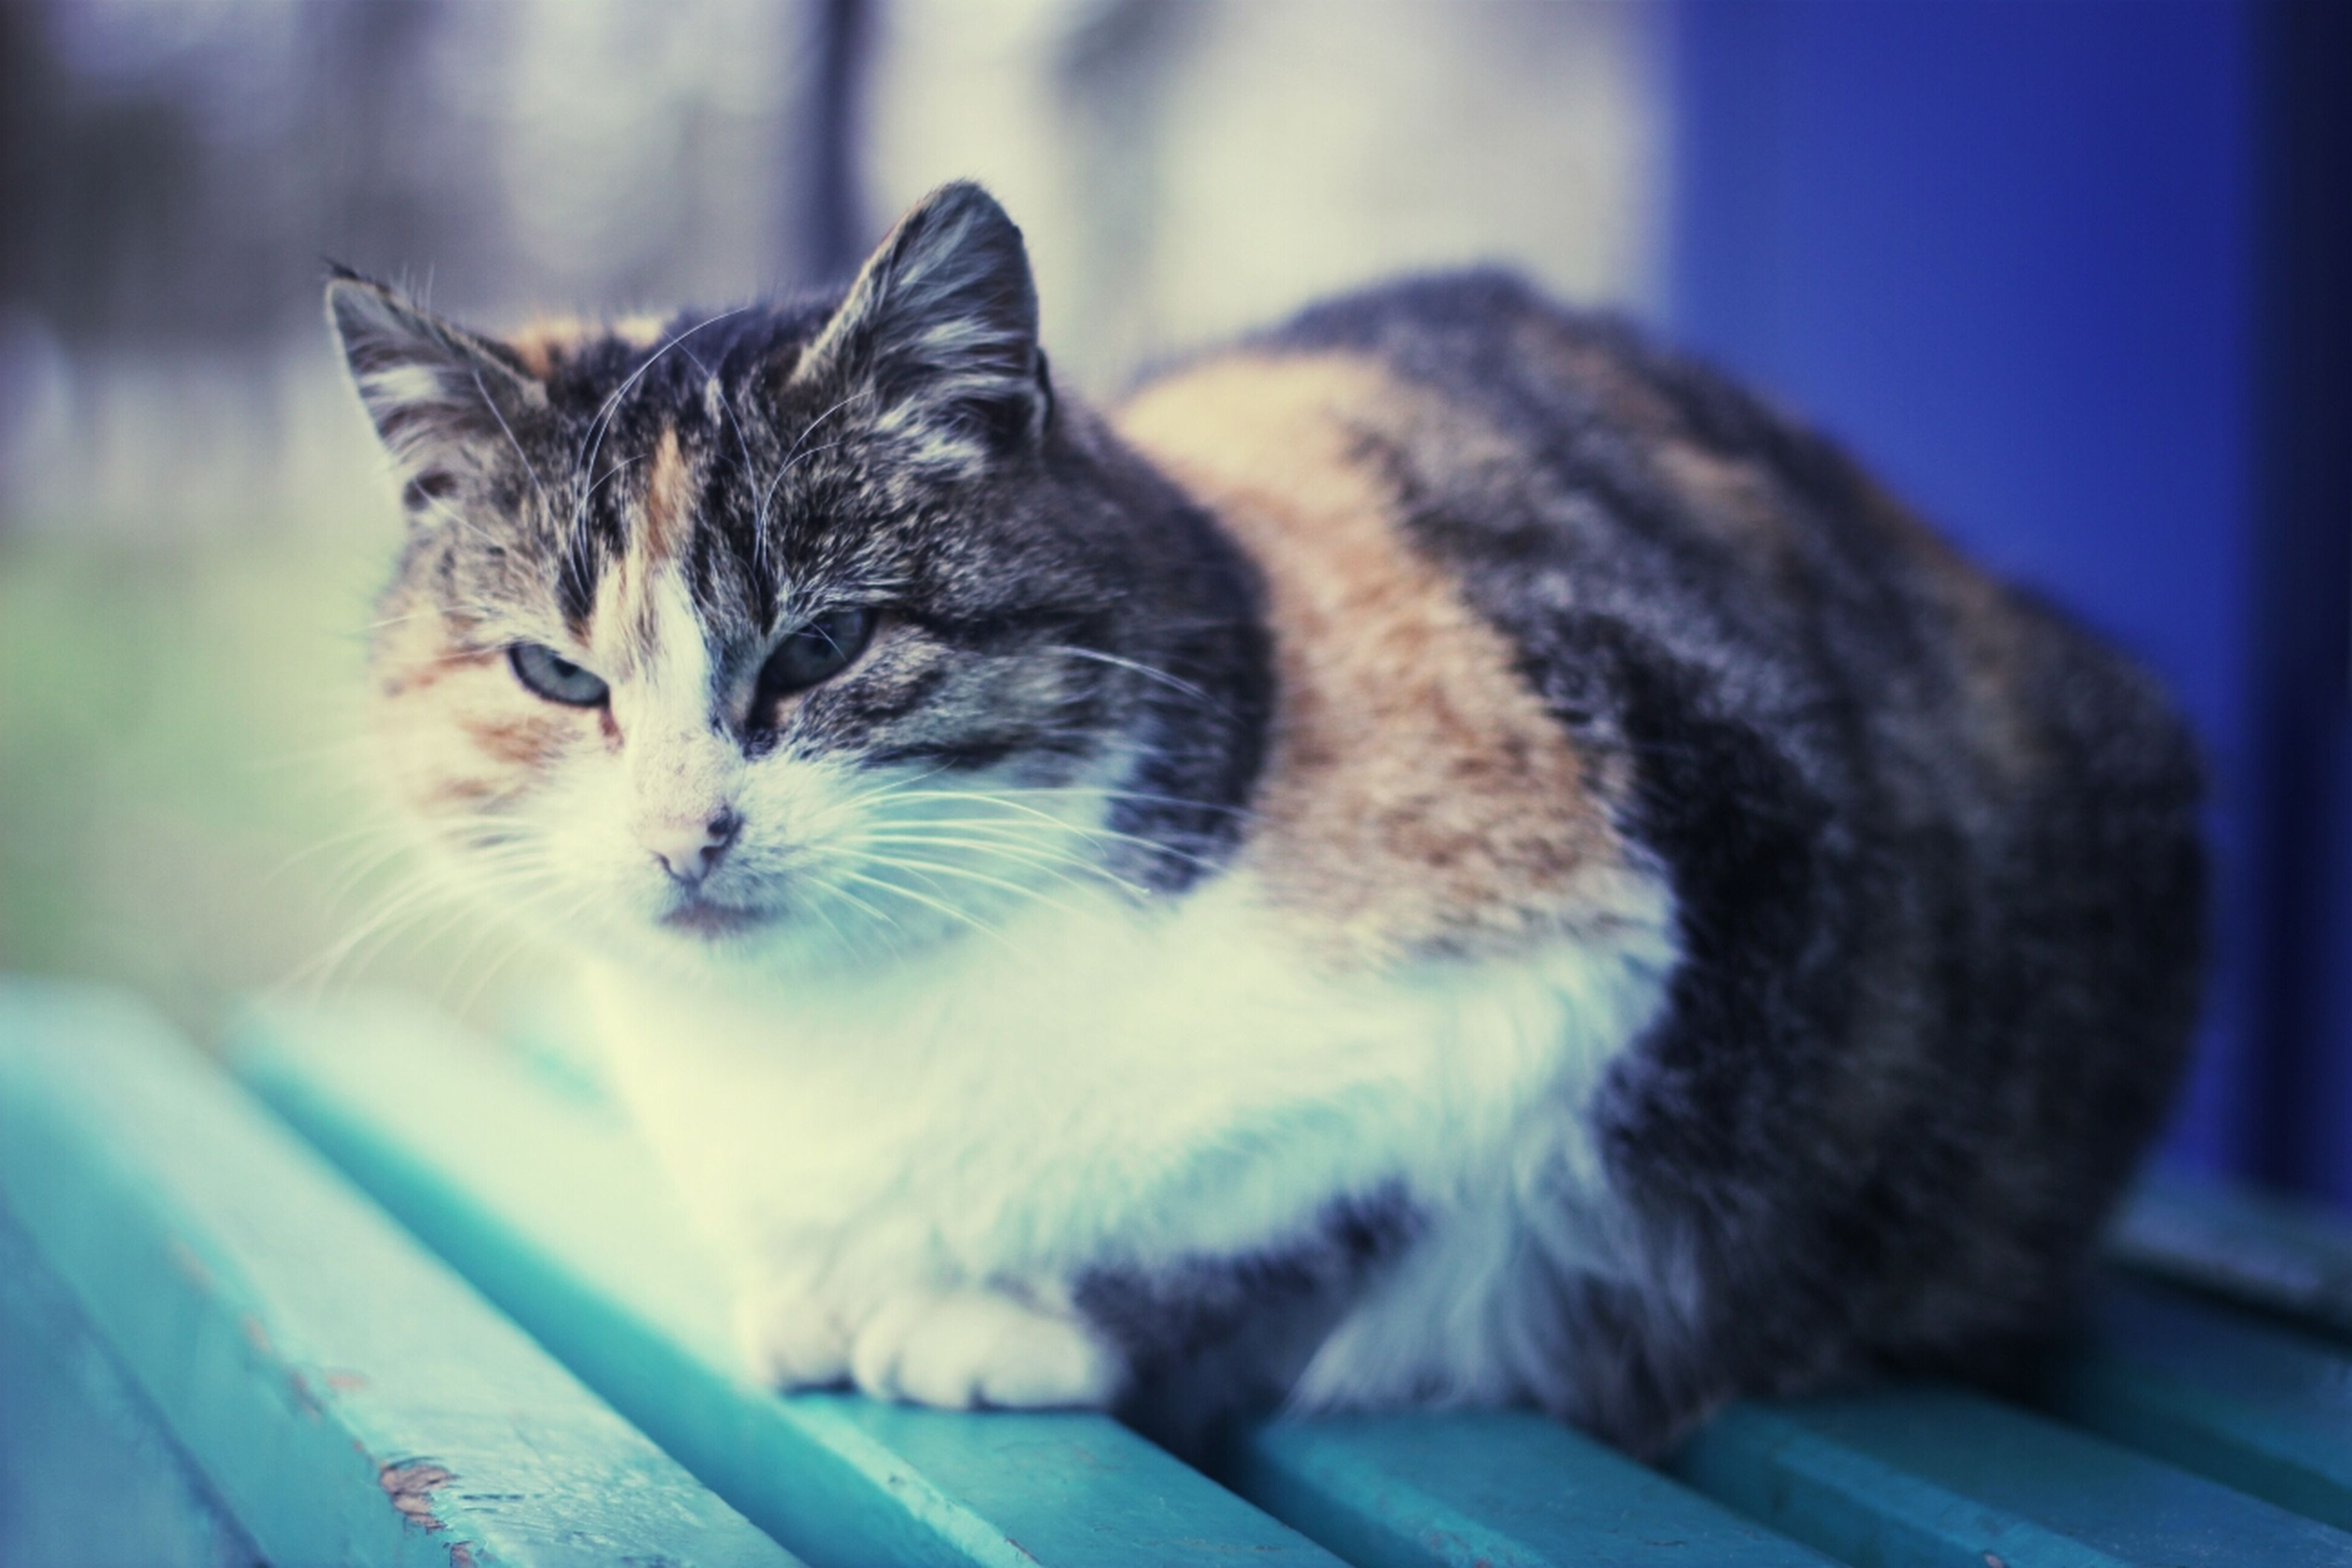 domestic cat, one animal, animal themes, pets, cat, domestic animals, feline, indoors, mammal, whisker, focus on foreground, close-up, relaxation, home interior, portrait, no people, sitting, looking at camera, selective focus